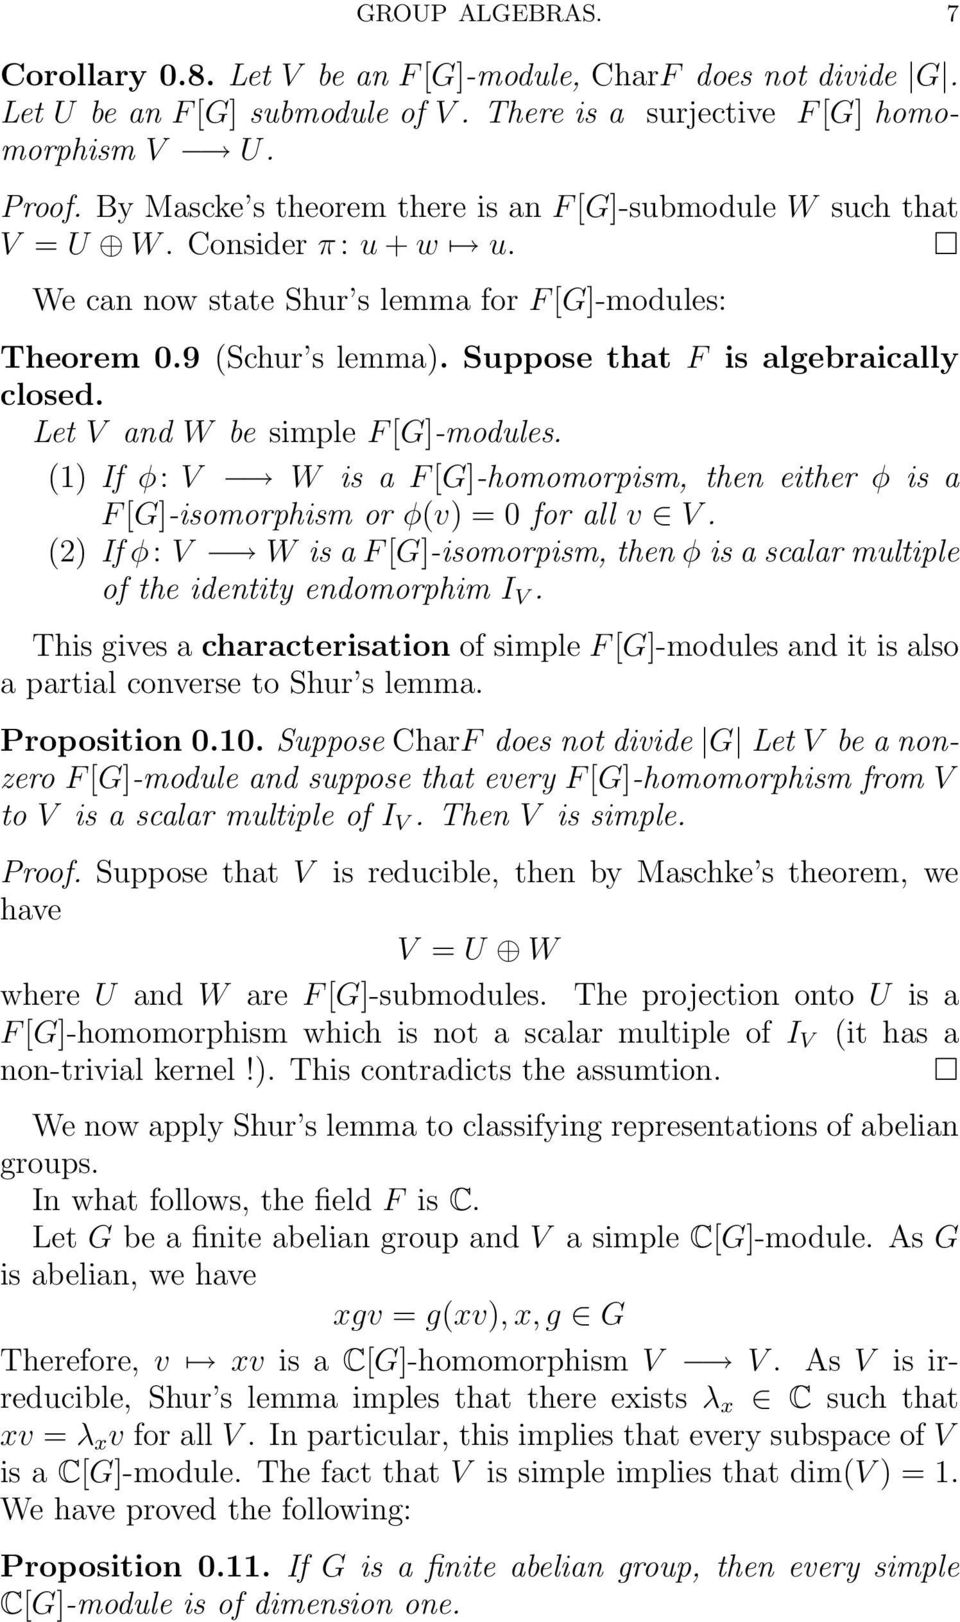 Suppose that F is algebraically closed. Let V and W be simple F[G]-modules. (1) If φ: V W is a F[G]-homomorpism, then either φ is a F[G]-isomorphism or φ(v) = 0 for all v V.